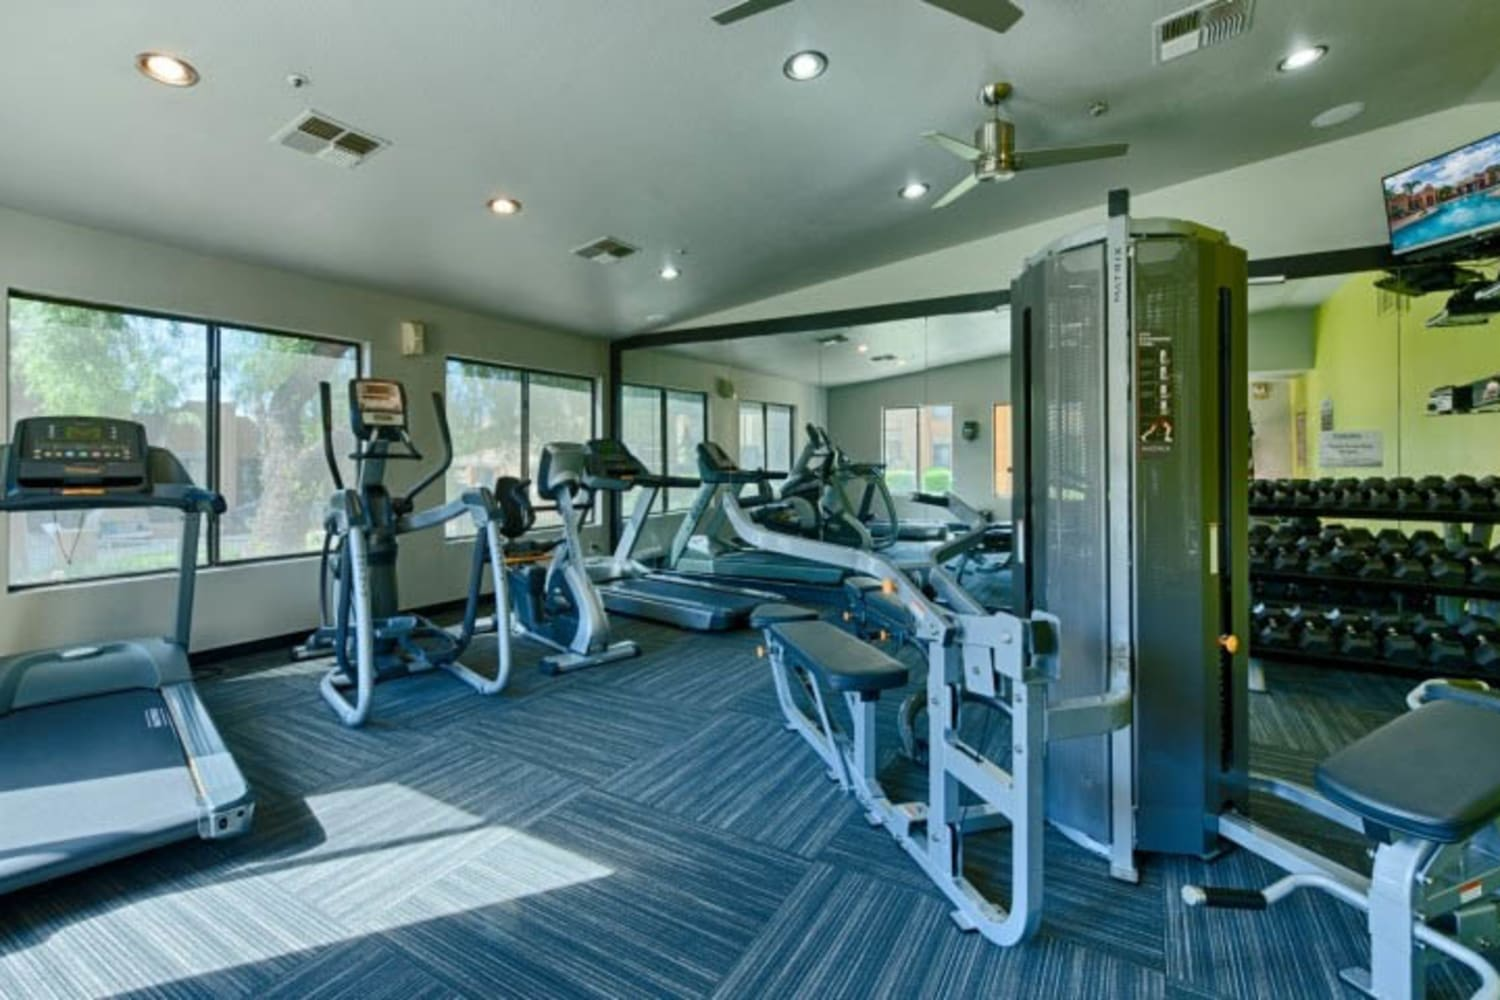 Fitness center at at Cabrillo Apartments in Scottsdale, Arizona